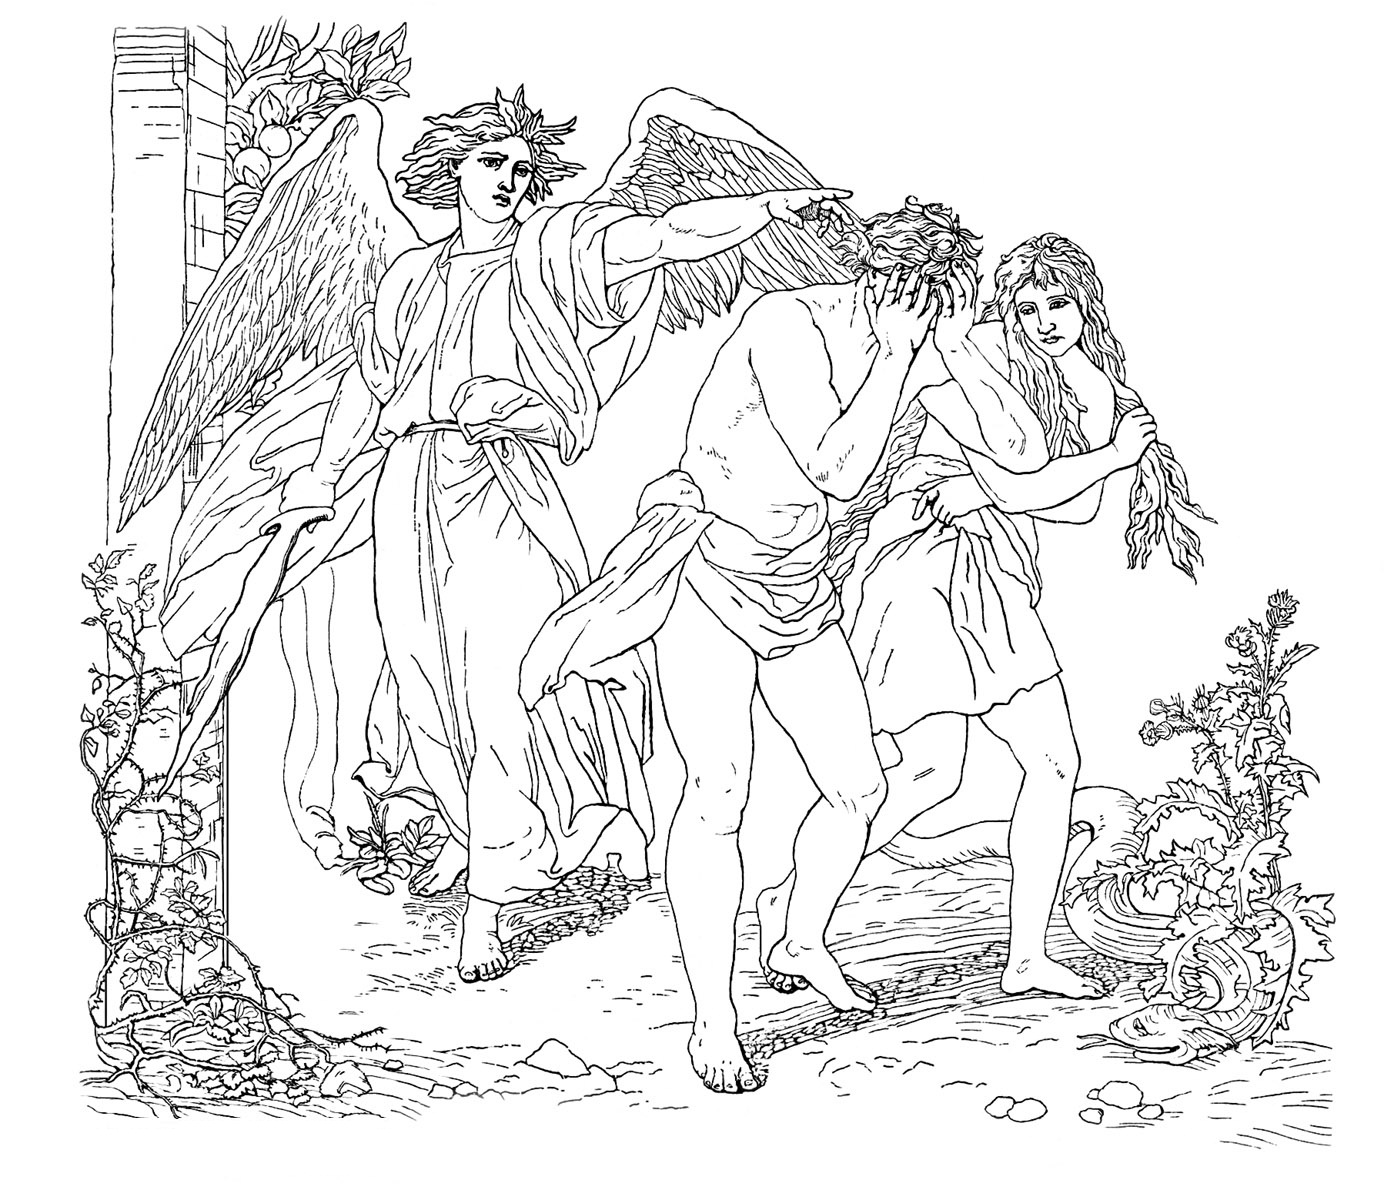 coloring pictures of adam and eve top 25 freeprintable adam and eve coloring pages online eve adam of and coloring pictures